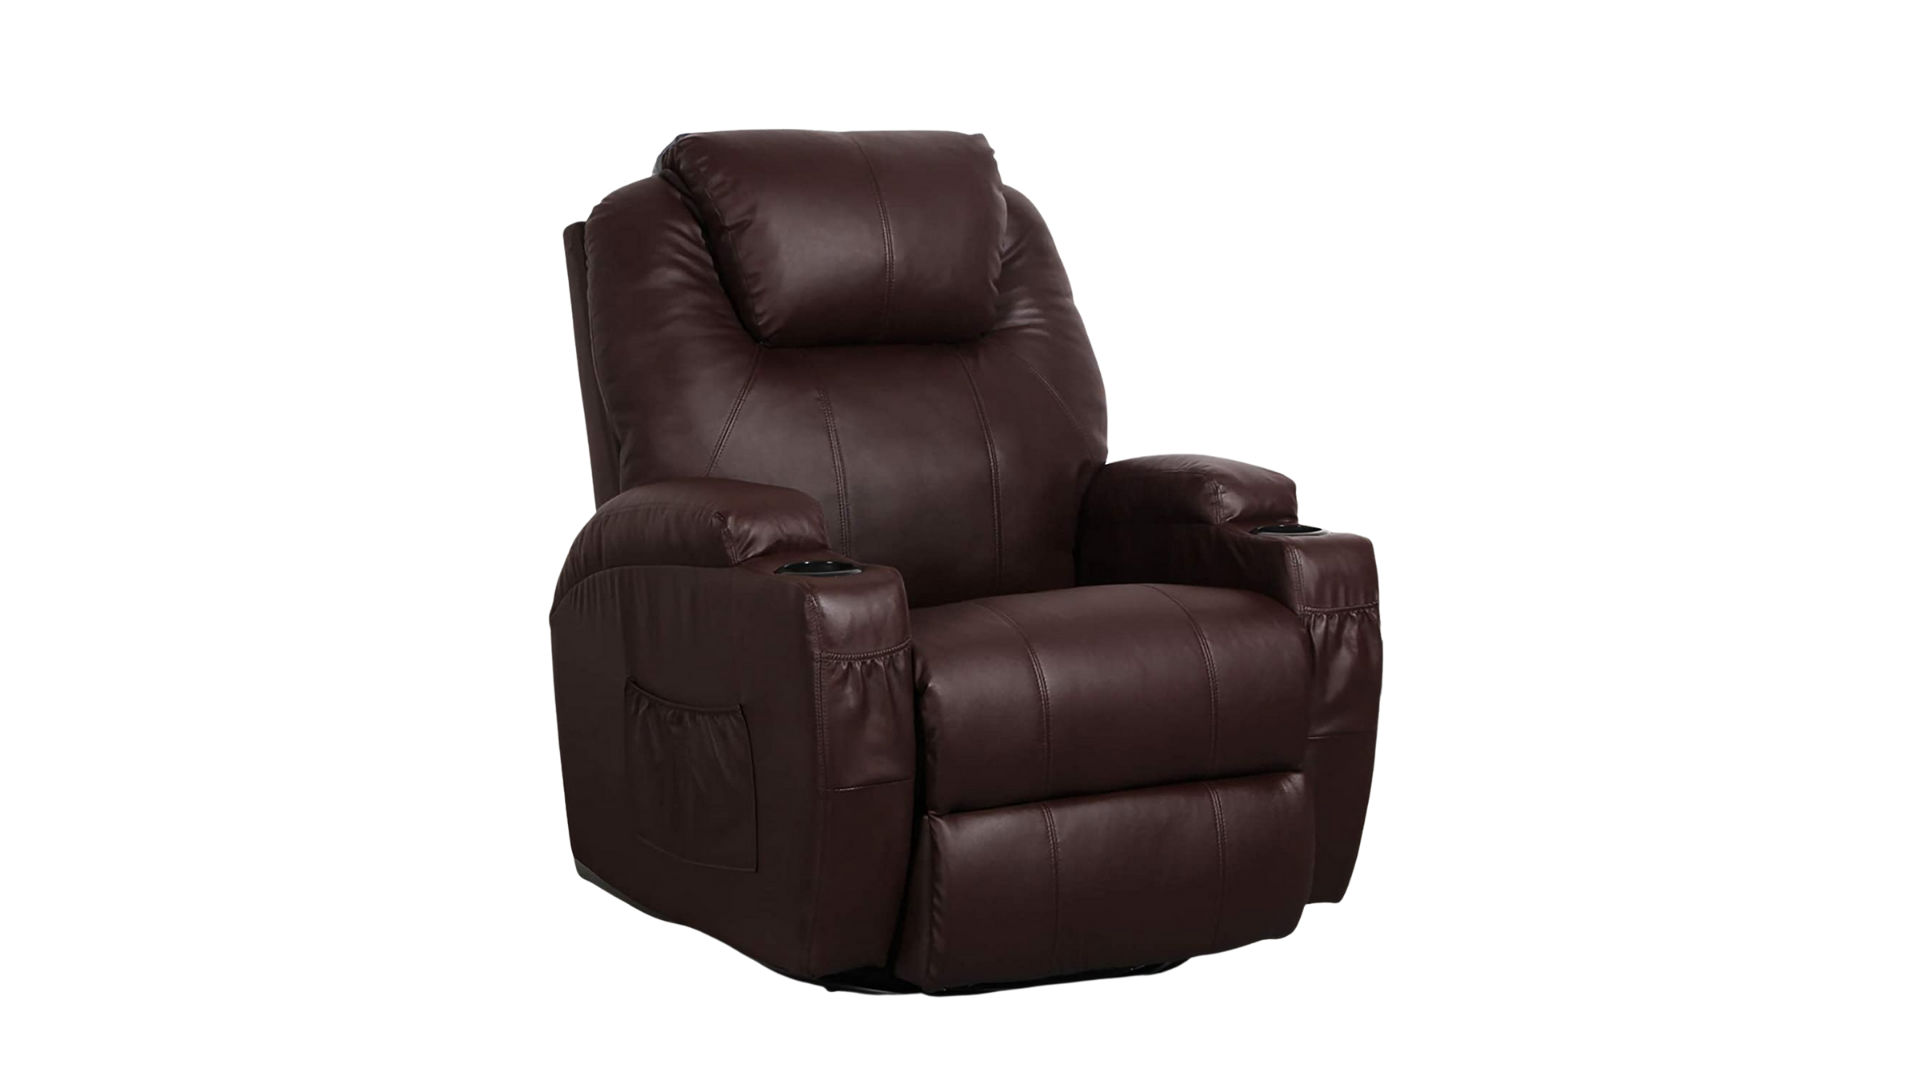 Esright best recliners for sleep